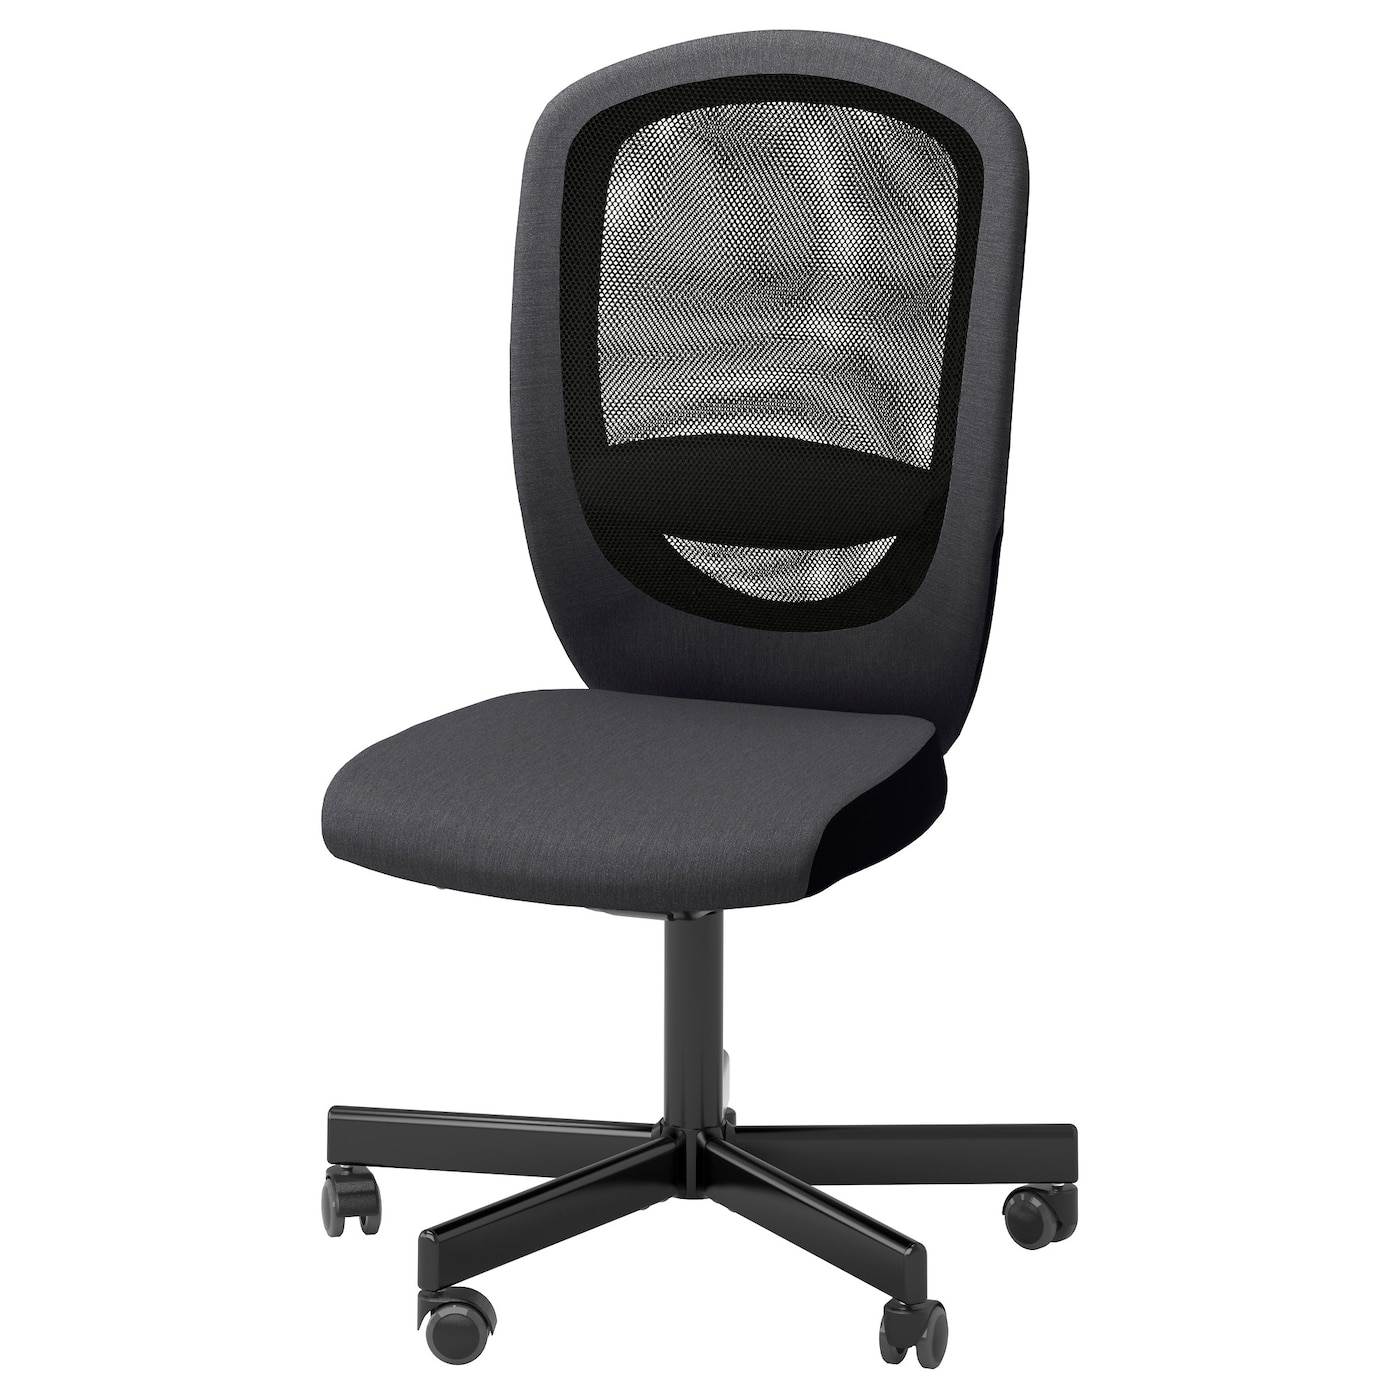 IKEA FLINTAN swivel chair You sit comfortably since the chair is adjustable in height.